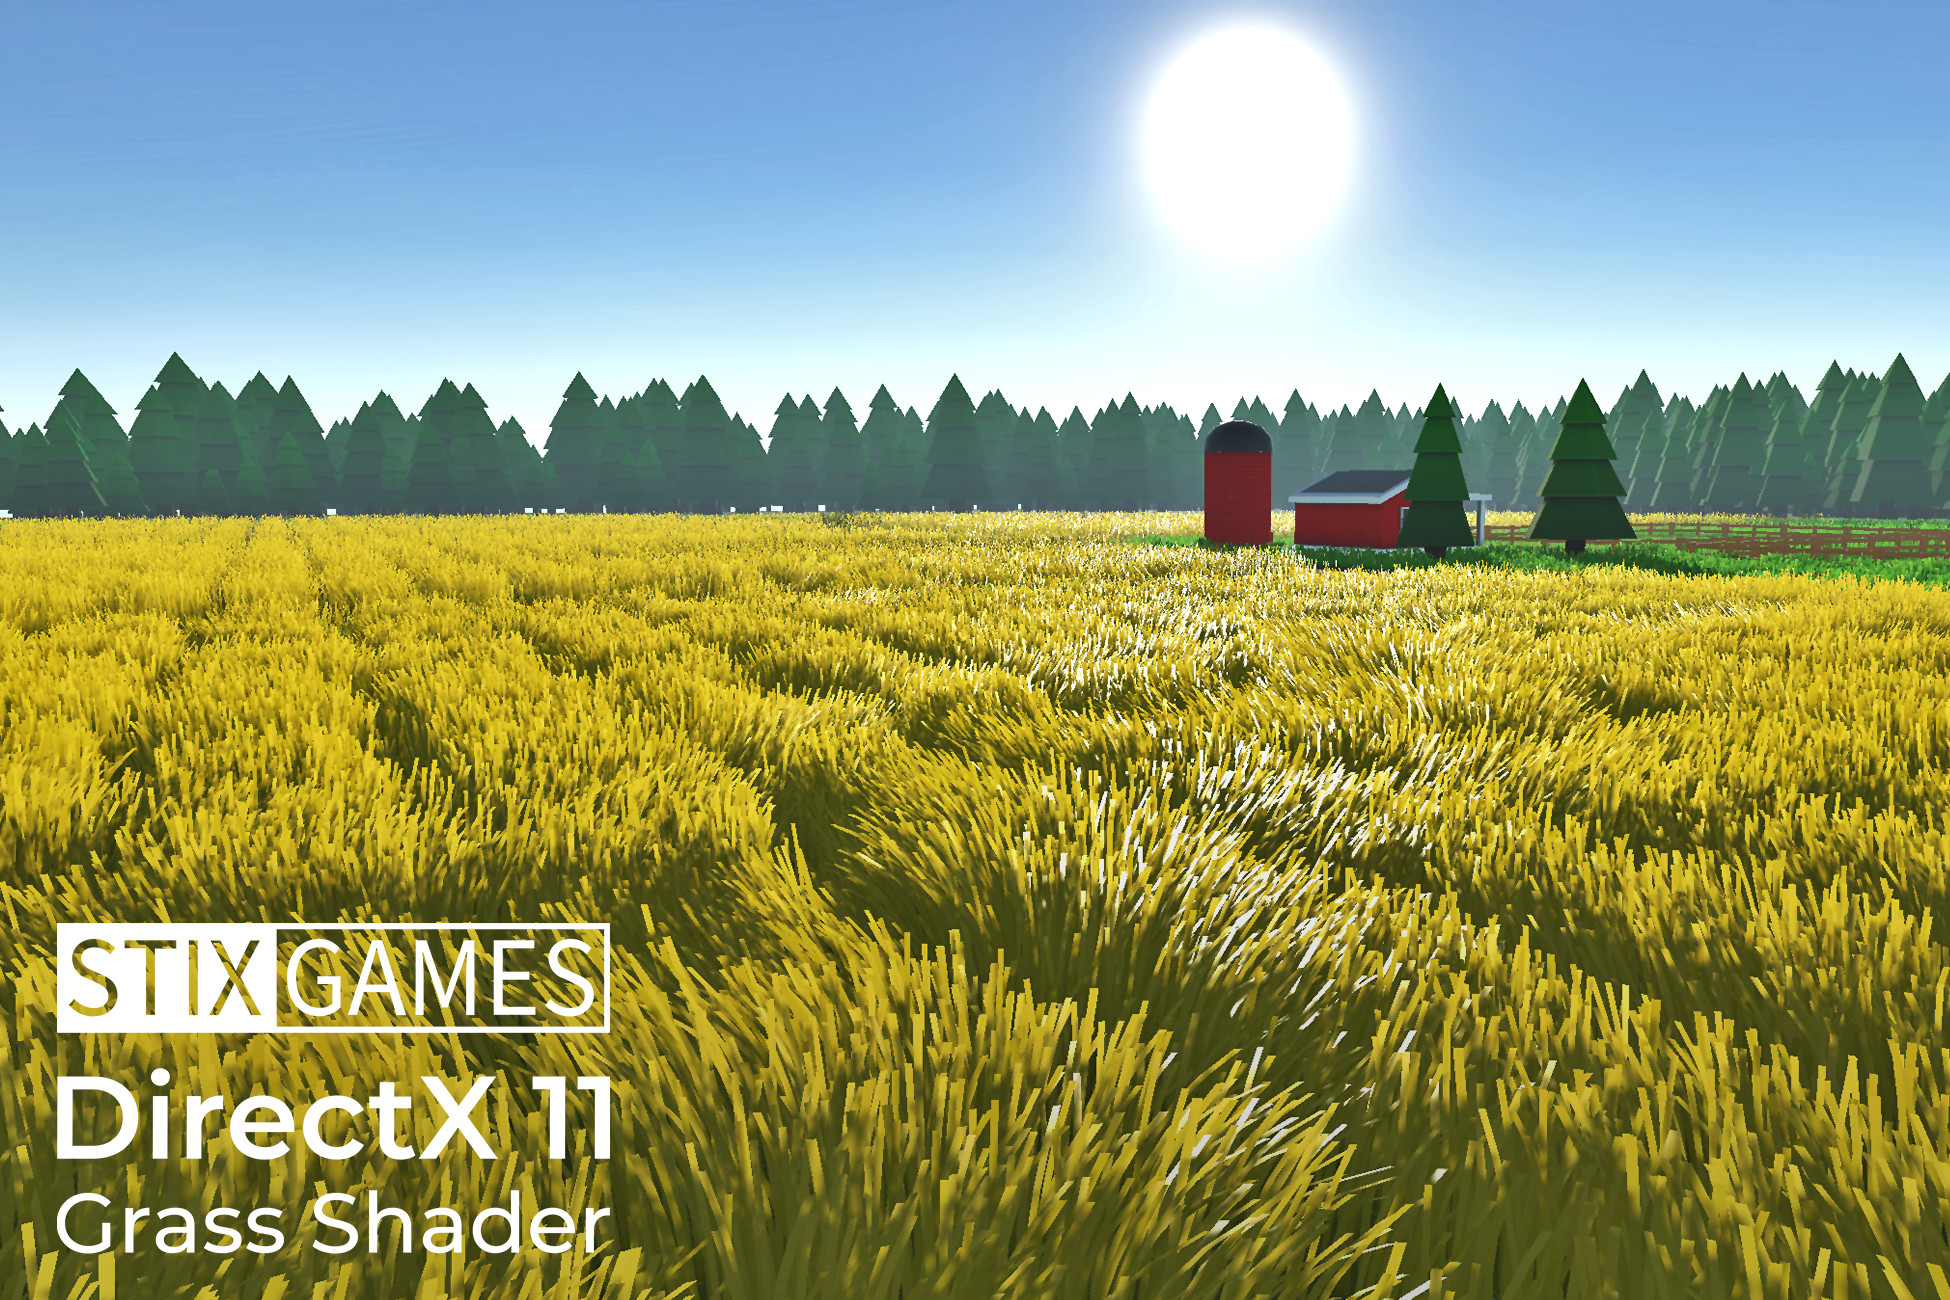 DirectX 11 Grass Shader